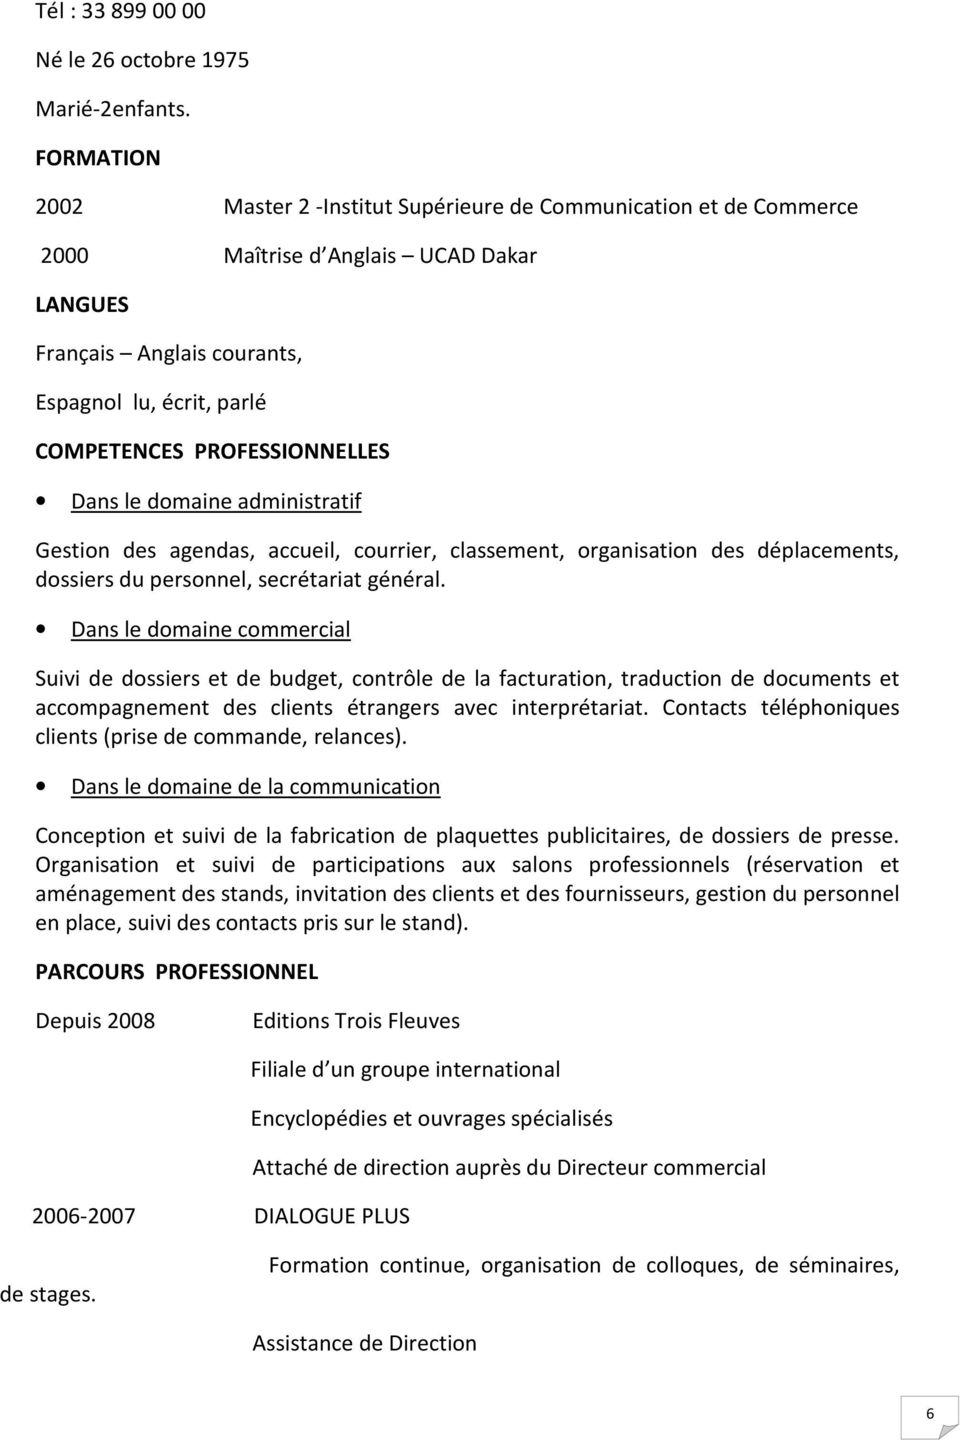 exemple de cv attache administratif